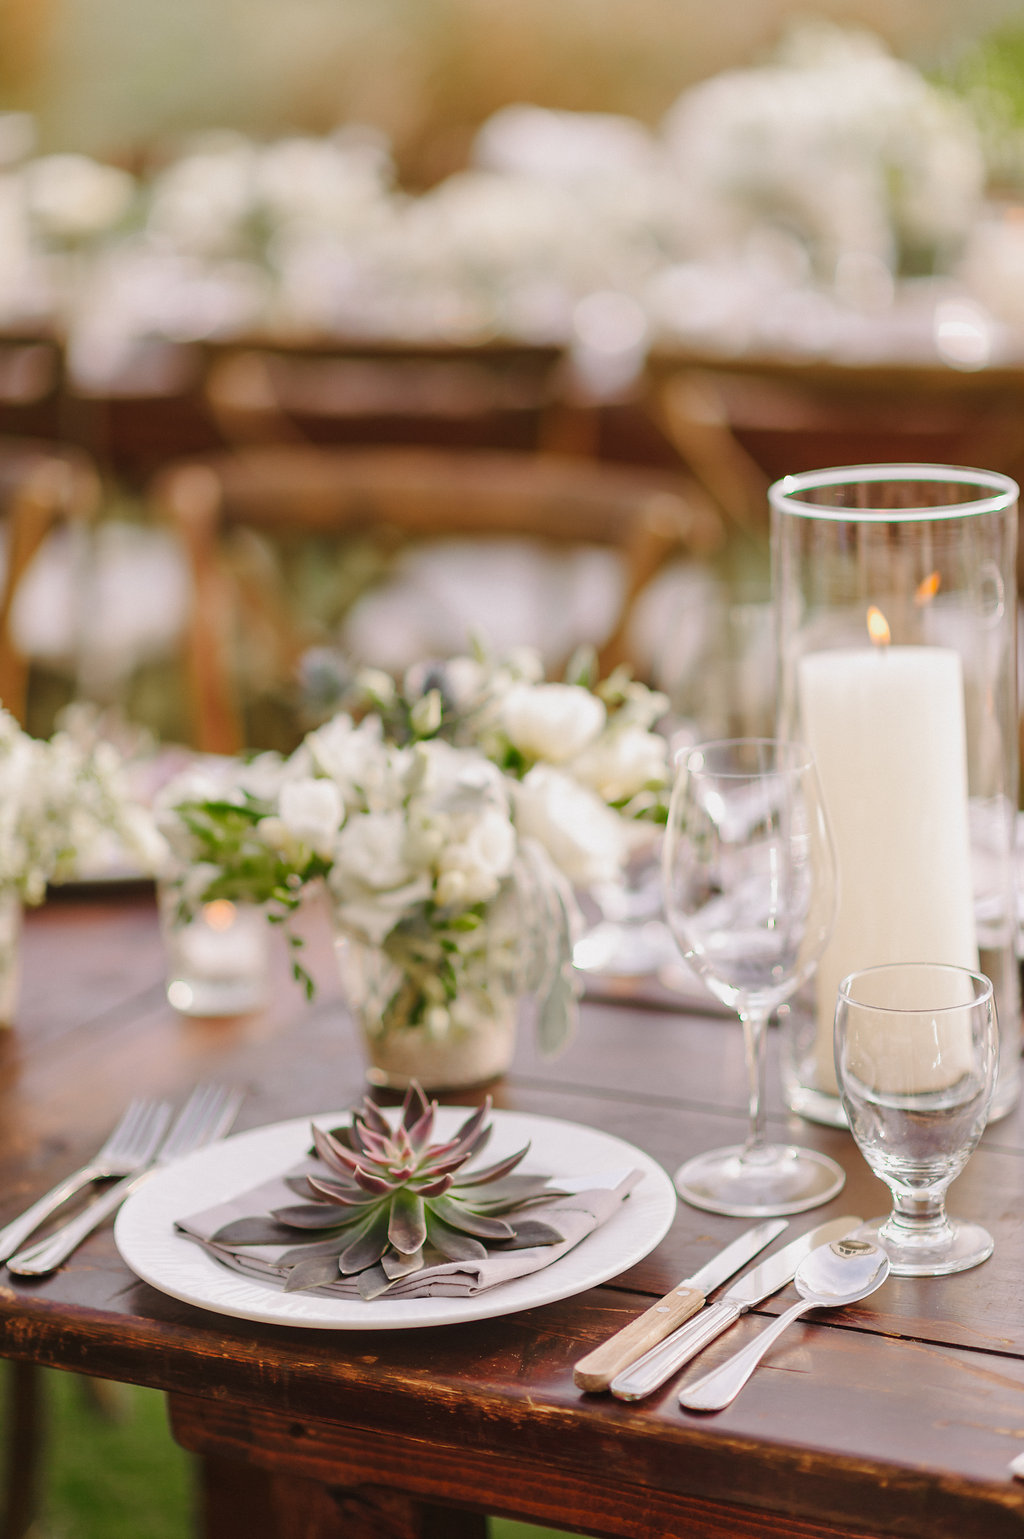 Wedding by the sea, Events by Reagan, Kiawah Wedding, Charleston Wedding Planner, Place Setting